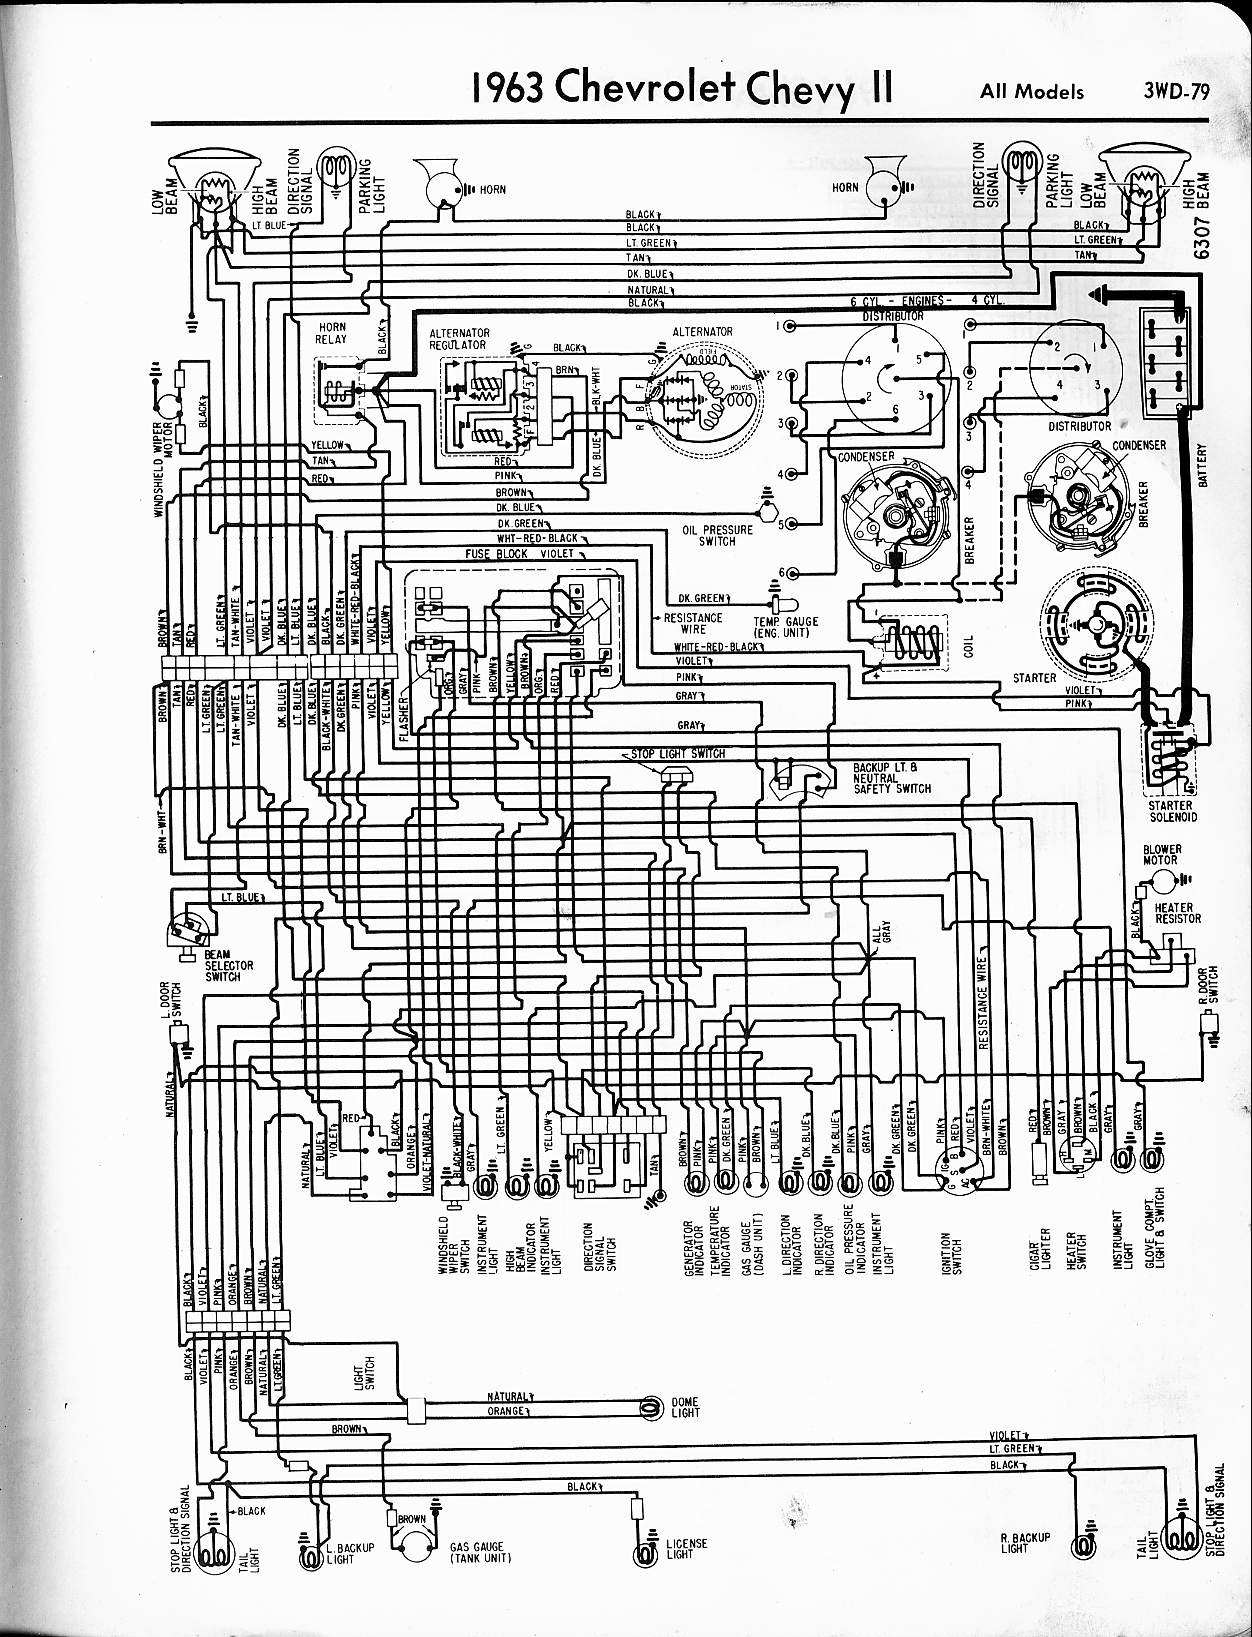 1967 corvette wiring diagram 5 7 bandidos kastellaun de \u20221963 corvette engine wiring diagram 11 pop capecoral rh 11 pop capecoral bootsvermietung de 1968 corvette